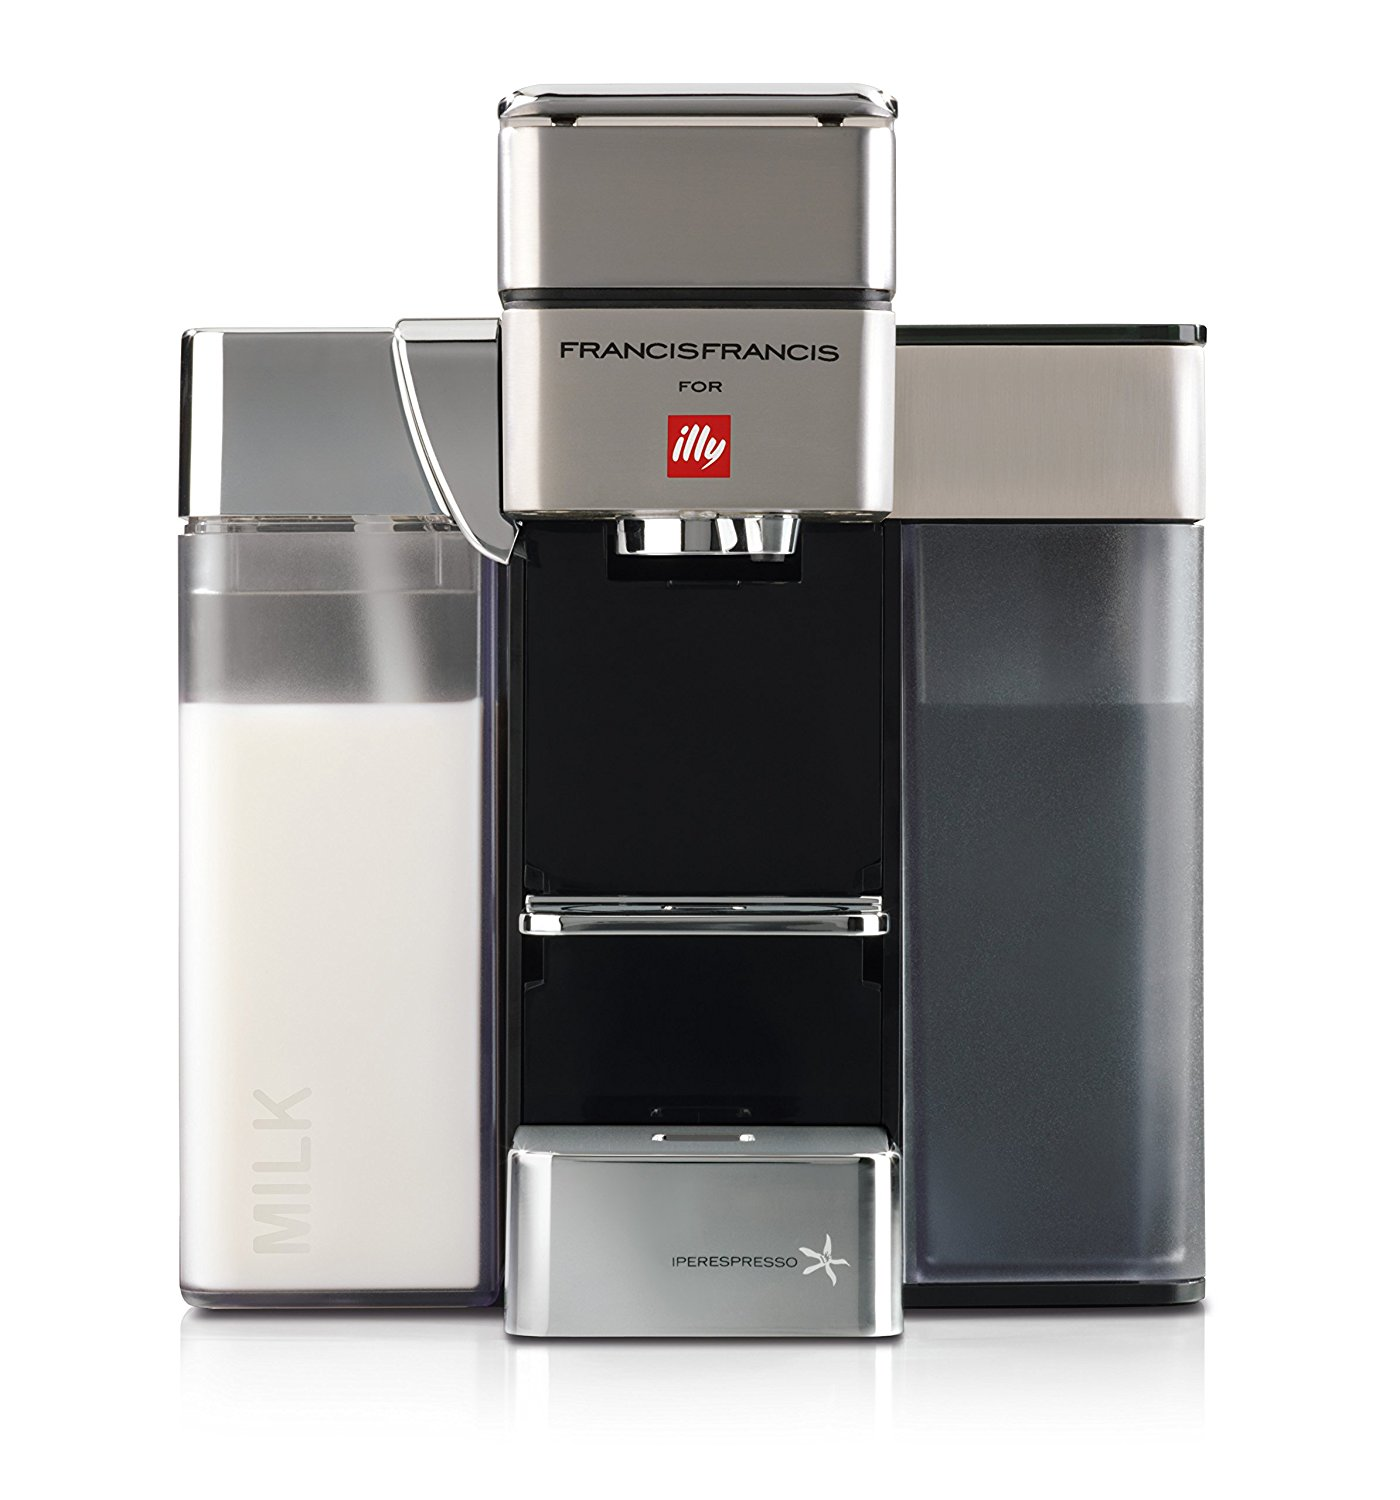 Illy Y5 (Milk) IperEspresso Coffee Machine